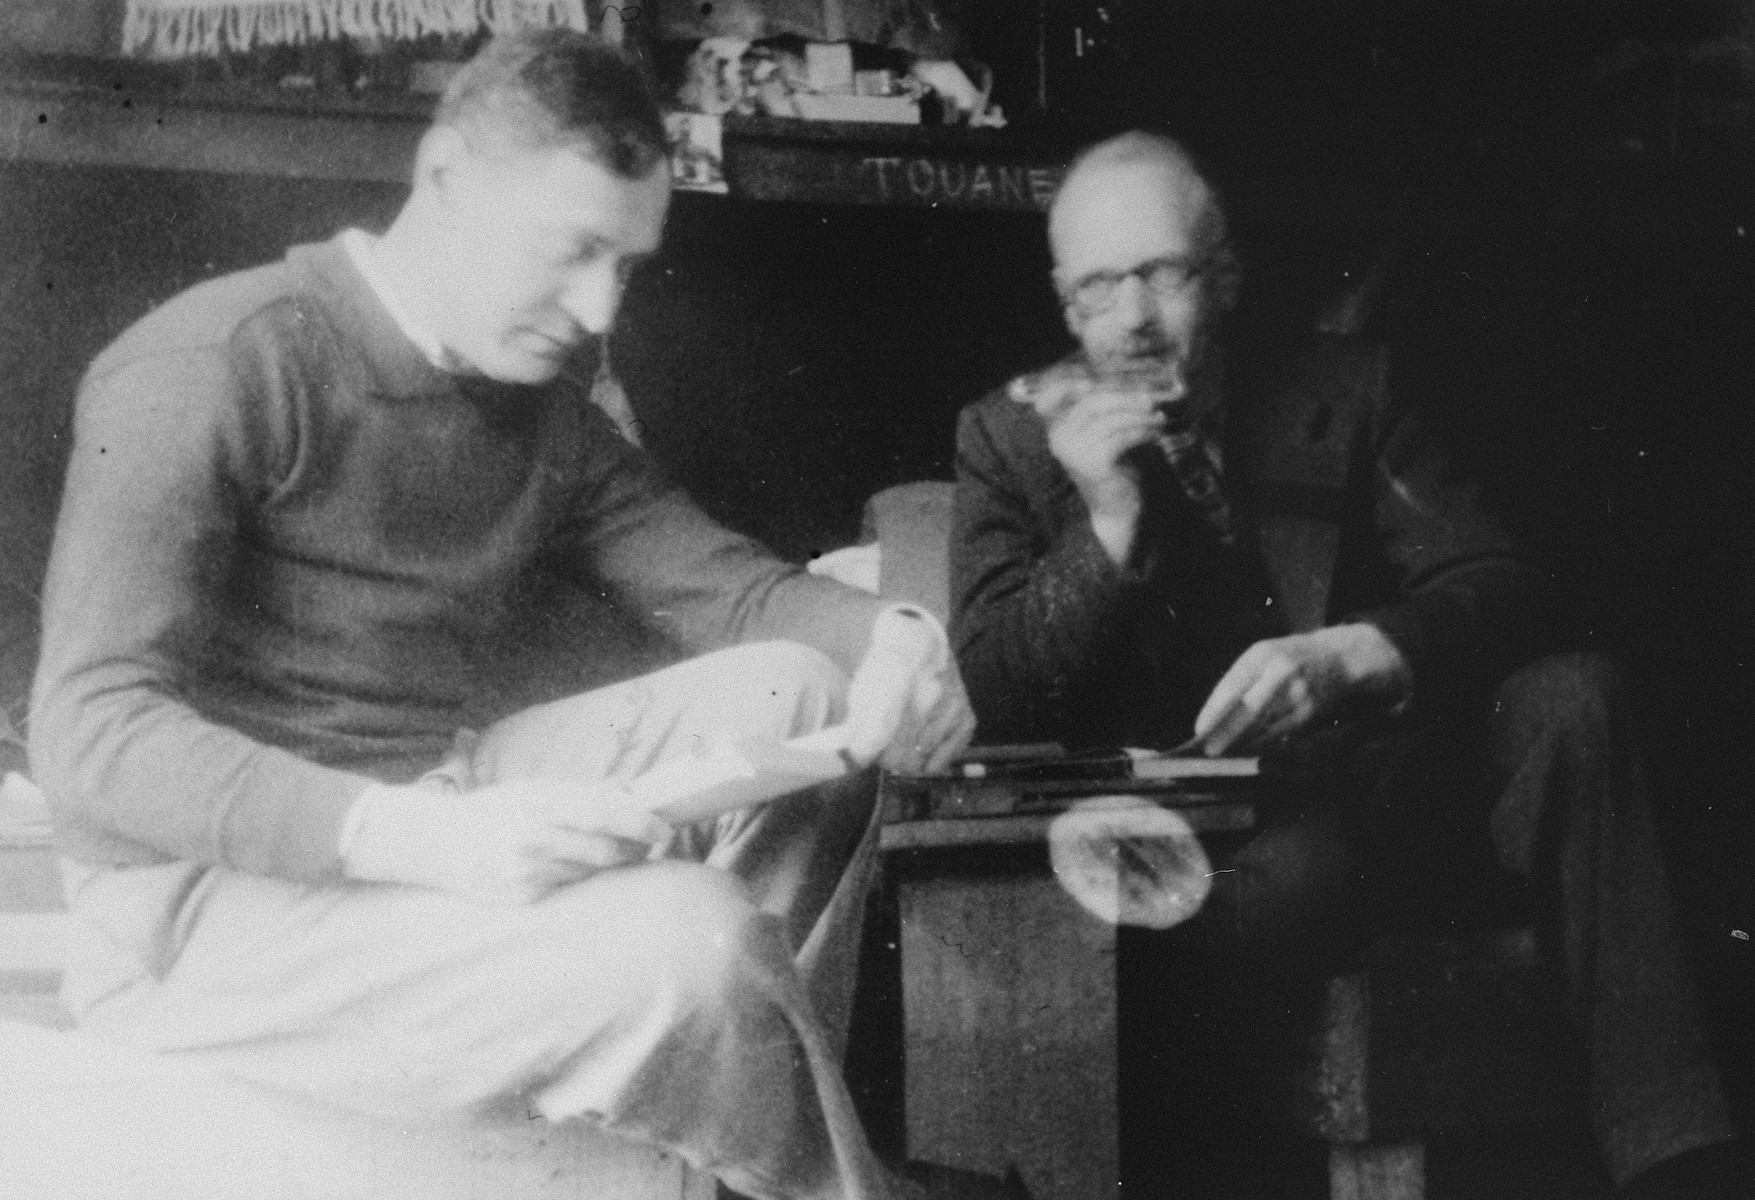 Pastors André Trocmé and Edouard Theis entertain themselves during their imprisonment in the Saint-Paul d'Eyjeaux internment camp.  Trocmé (right) plays the harmonica while Theis (left) reads a book.